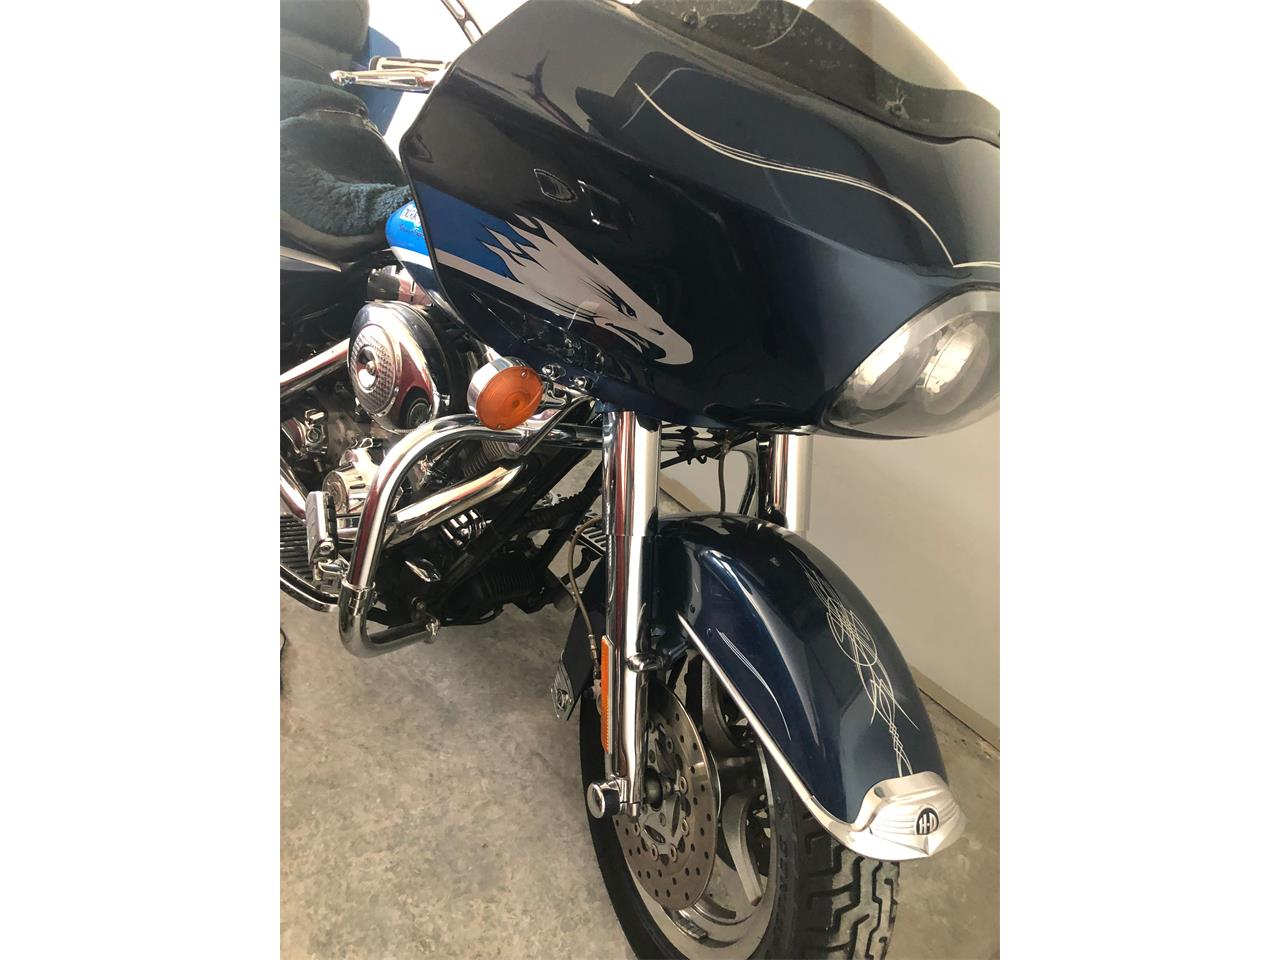 2001 Harley-Davidson Road Glide (CC-1256474) for sale in Waunakee, Wisconsin